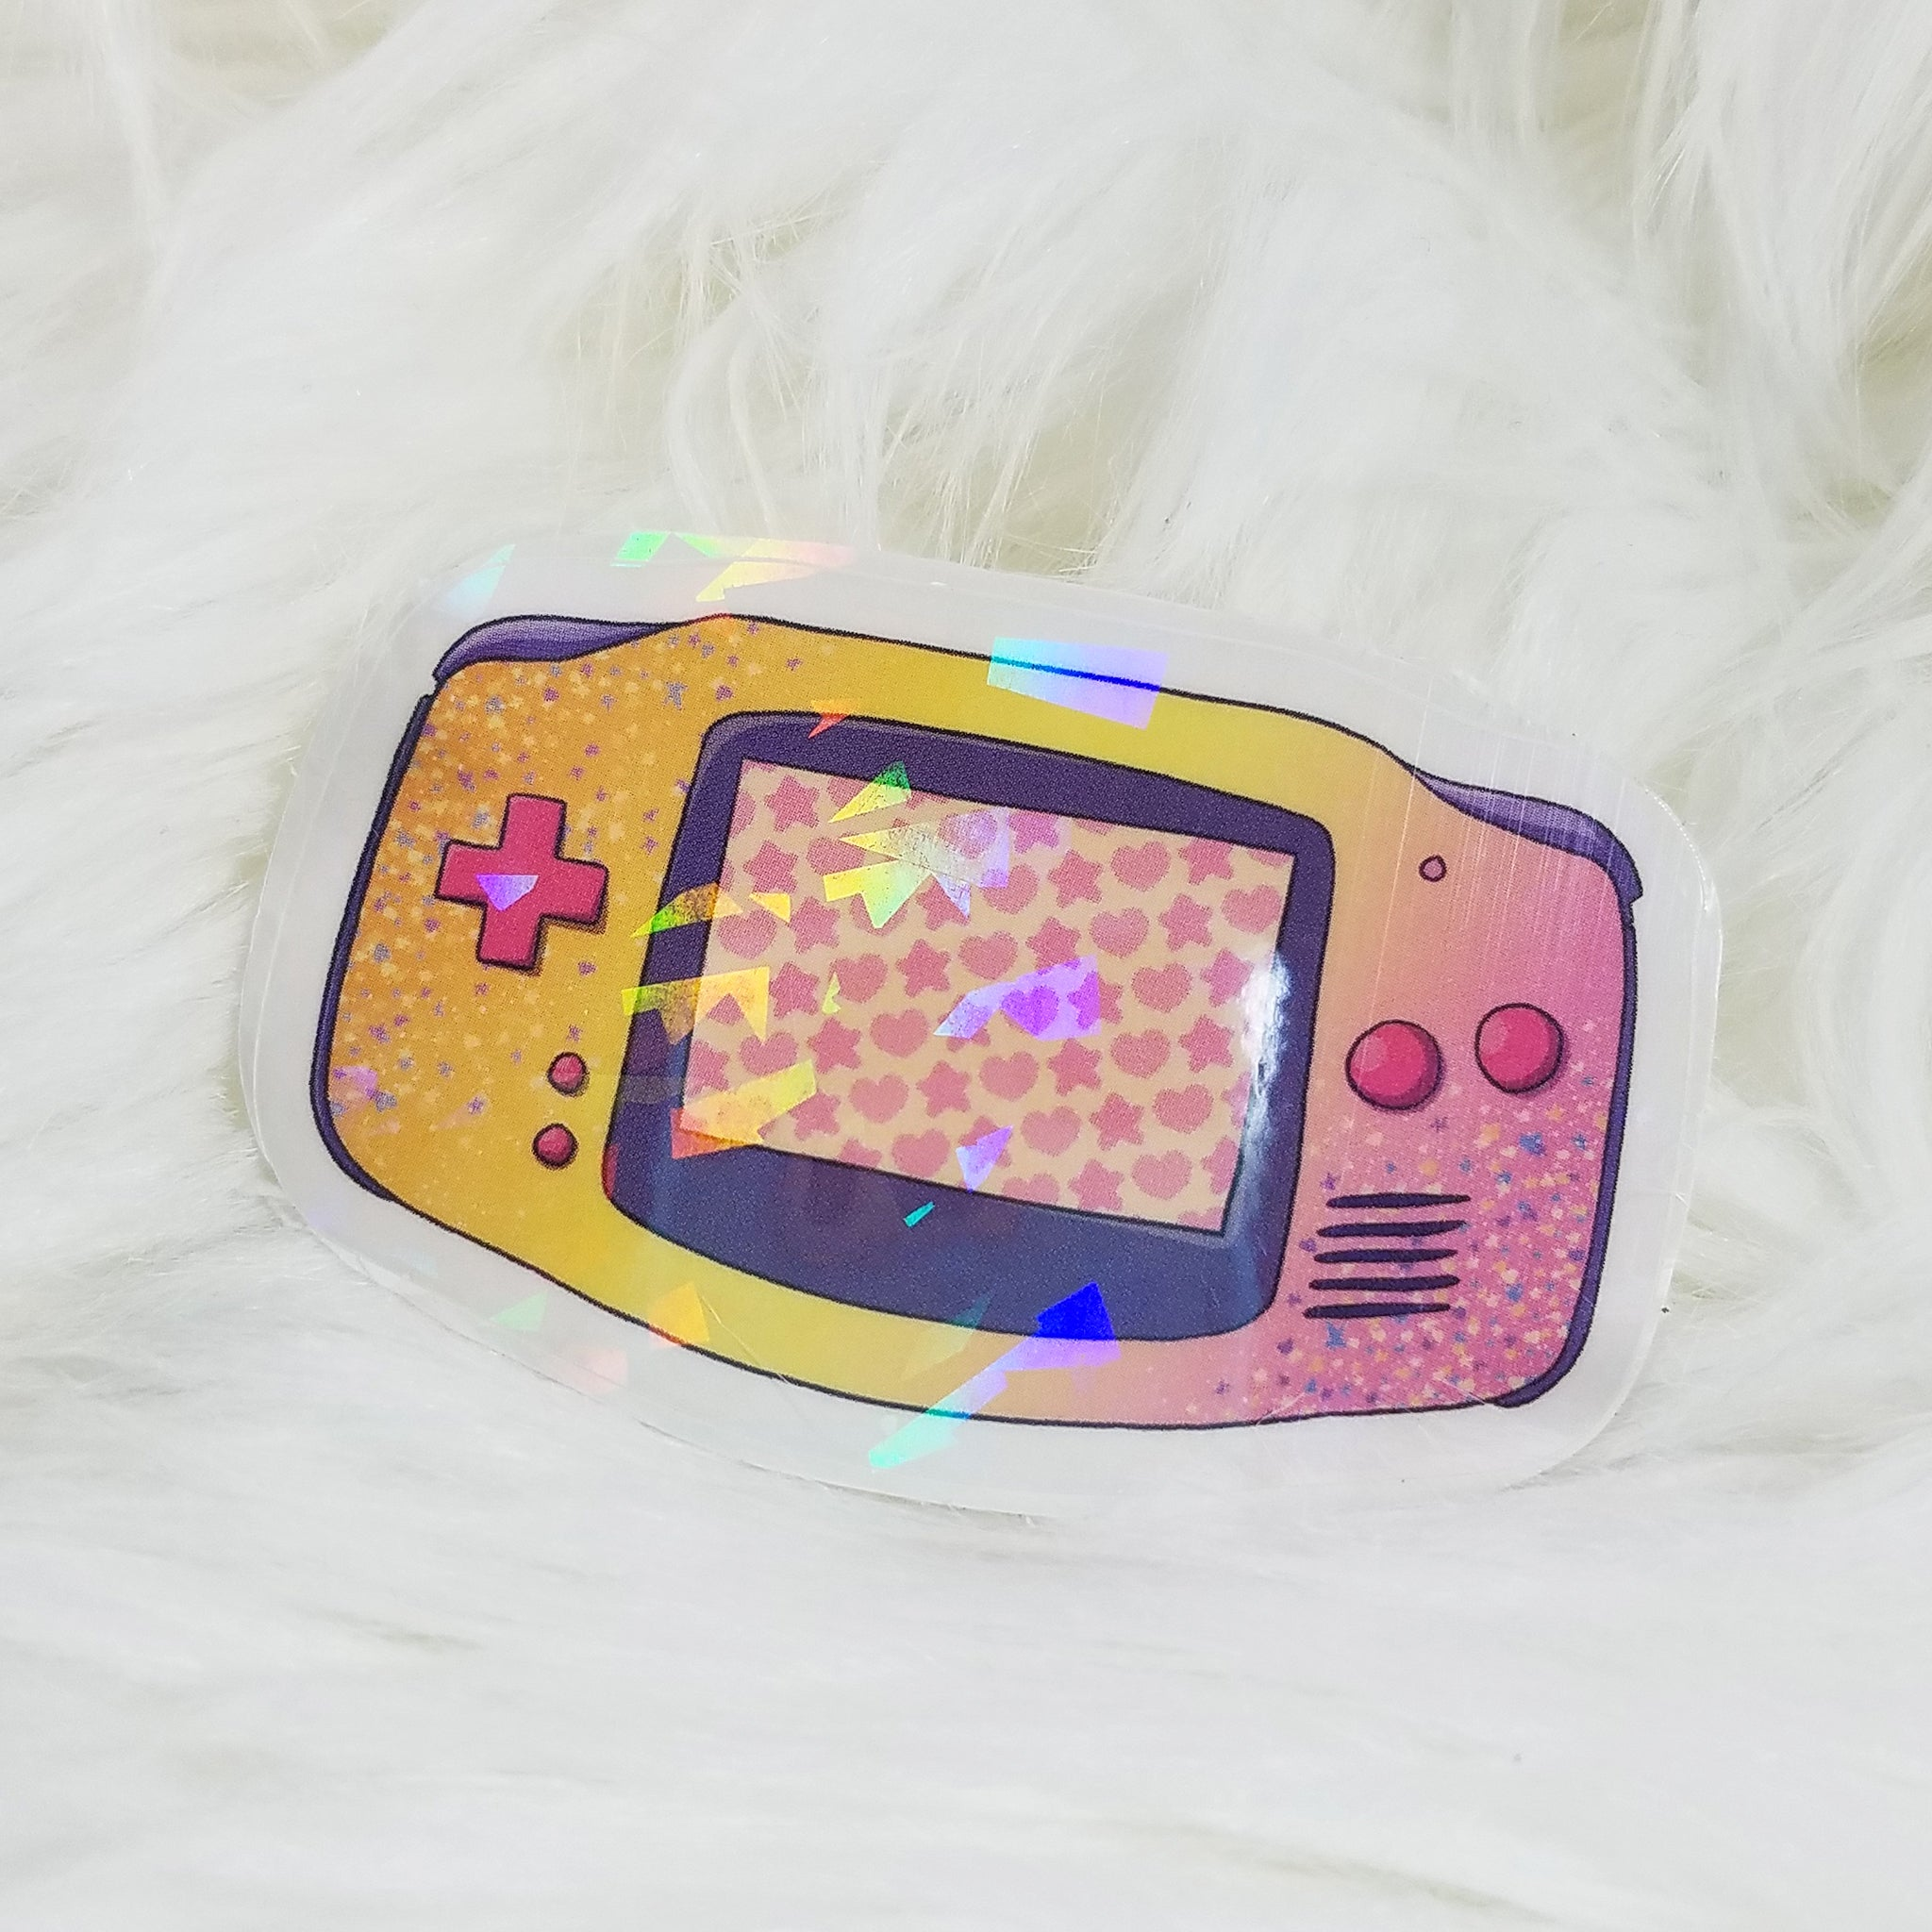 Cute Consoles Stickers